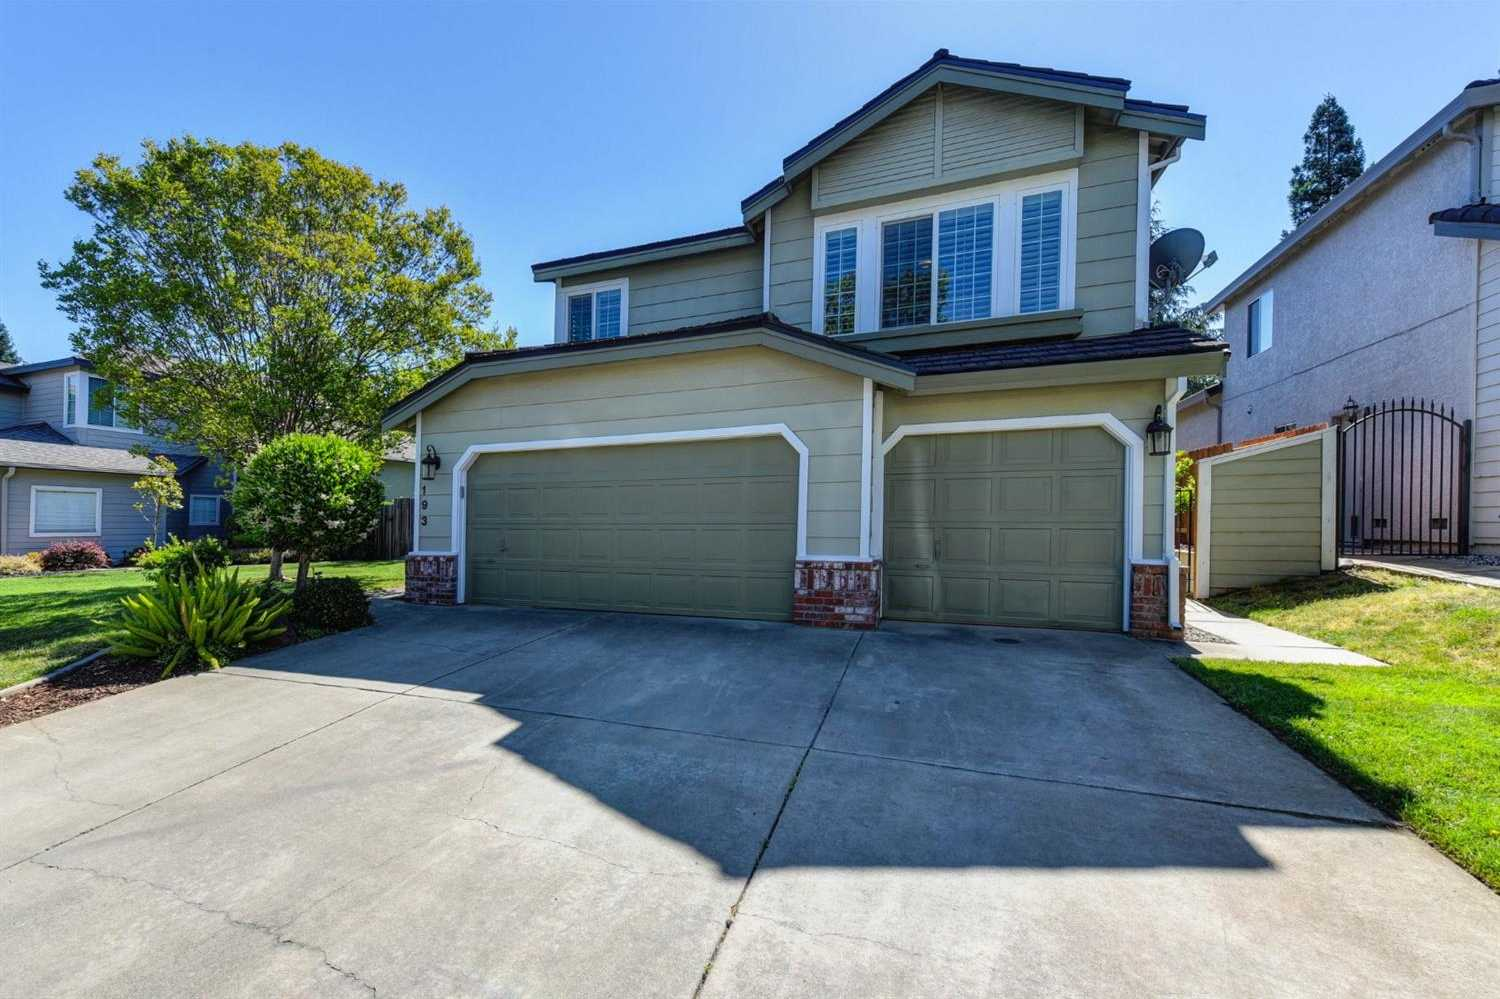 $679,000 - 5Br/3Ba -  for Sale in Folsom